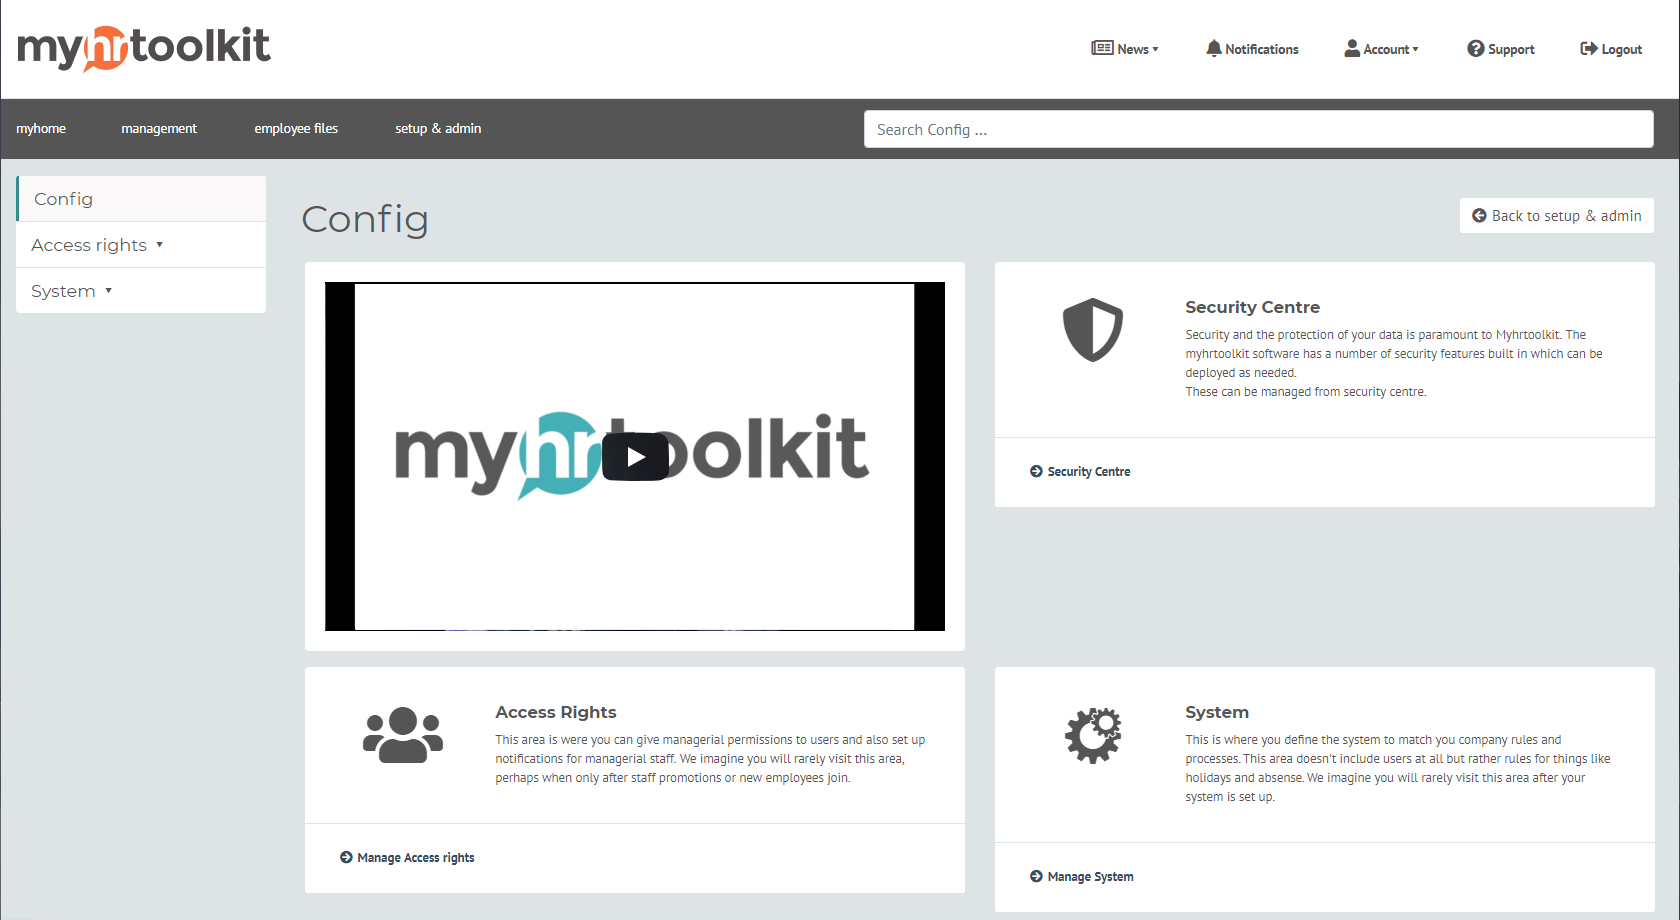 myhrtoolkit HR software config area